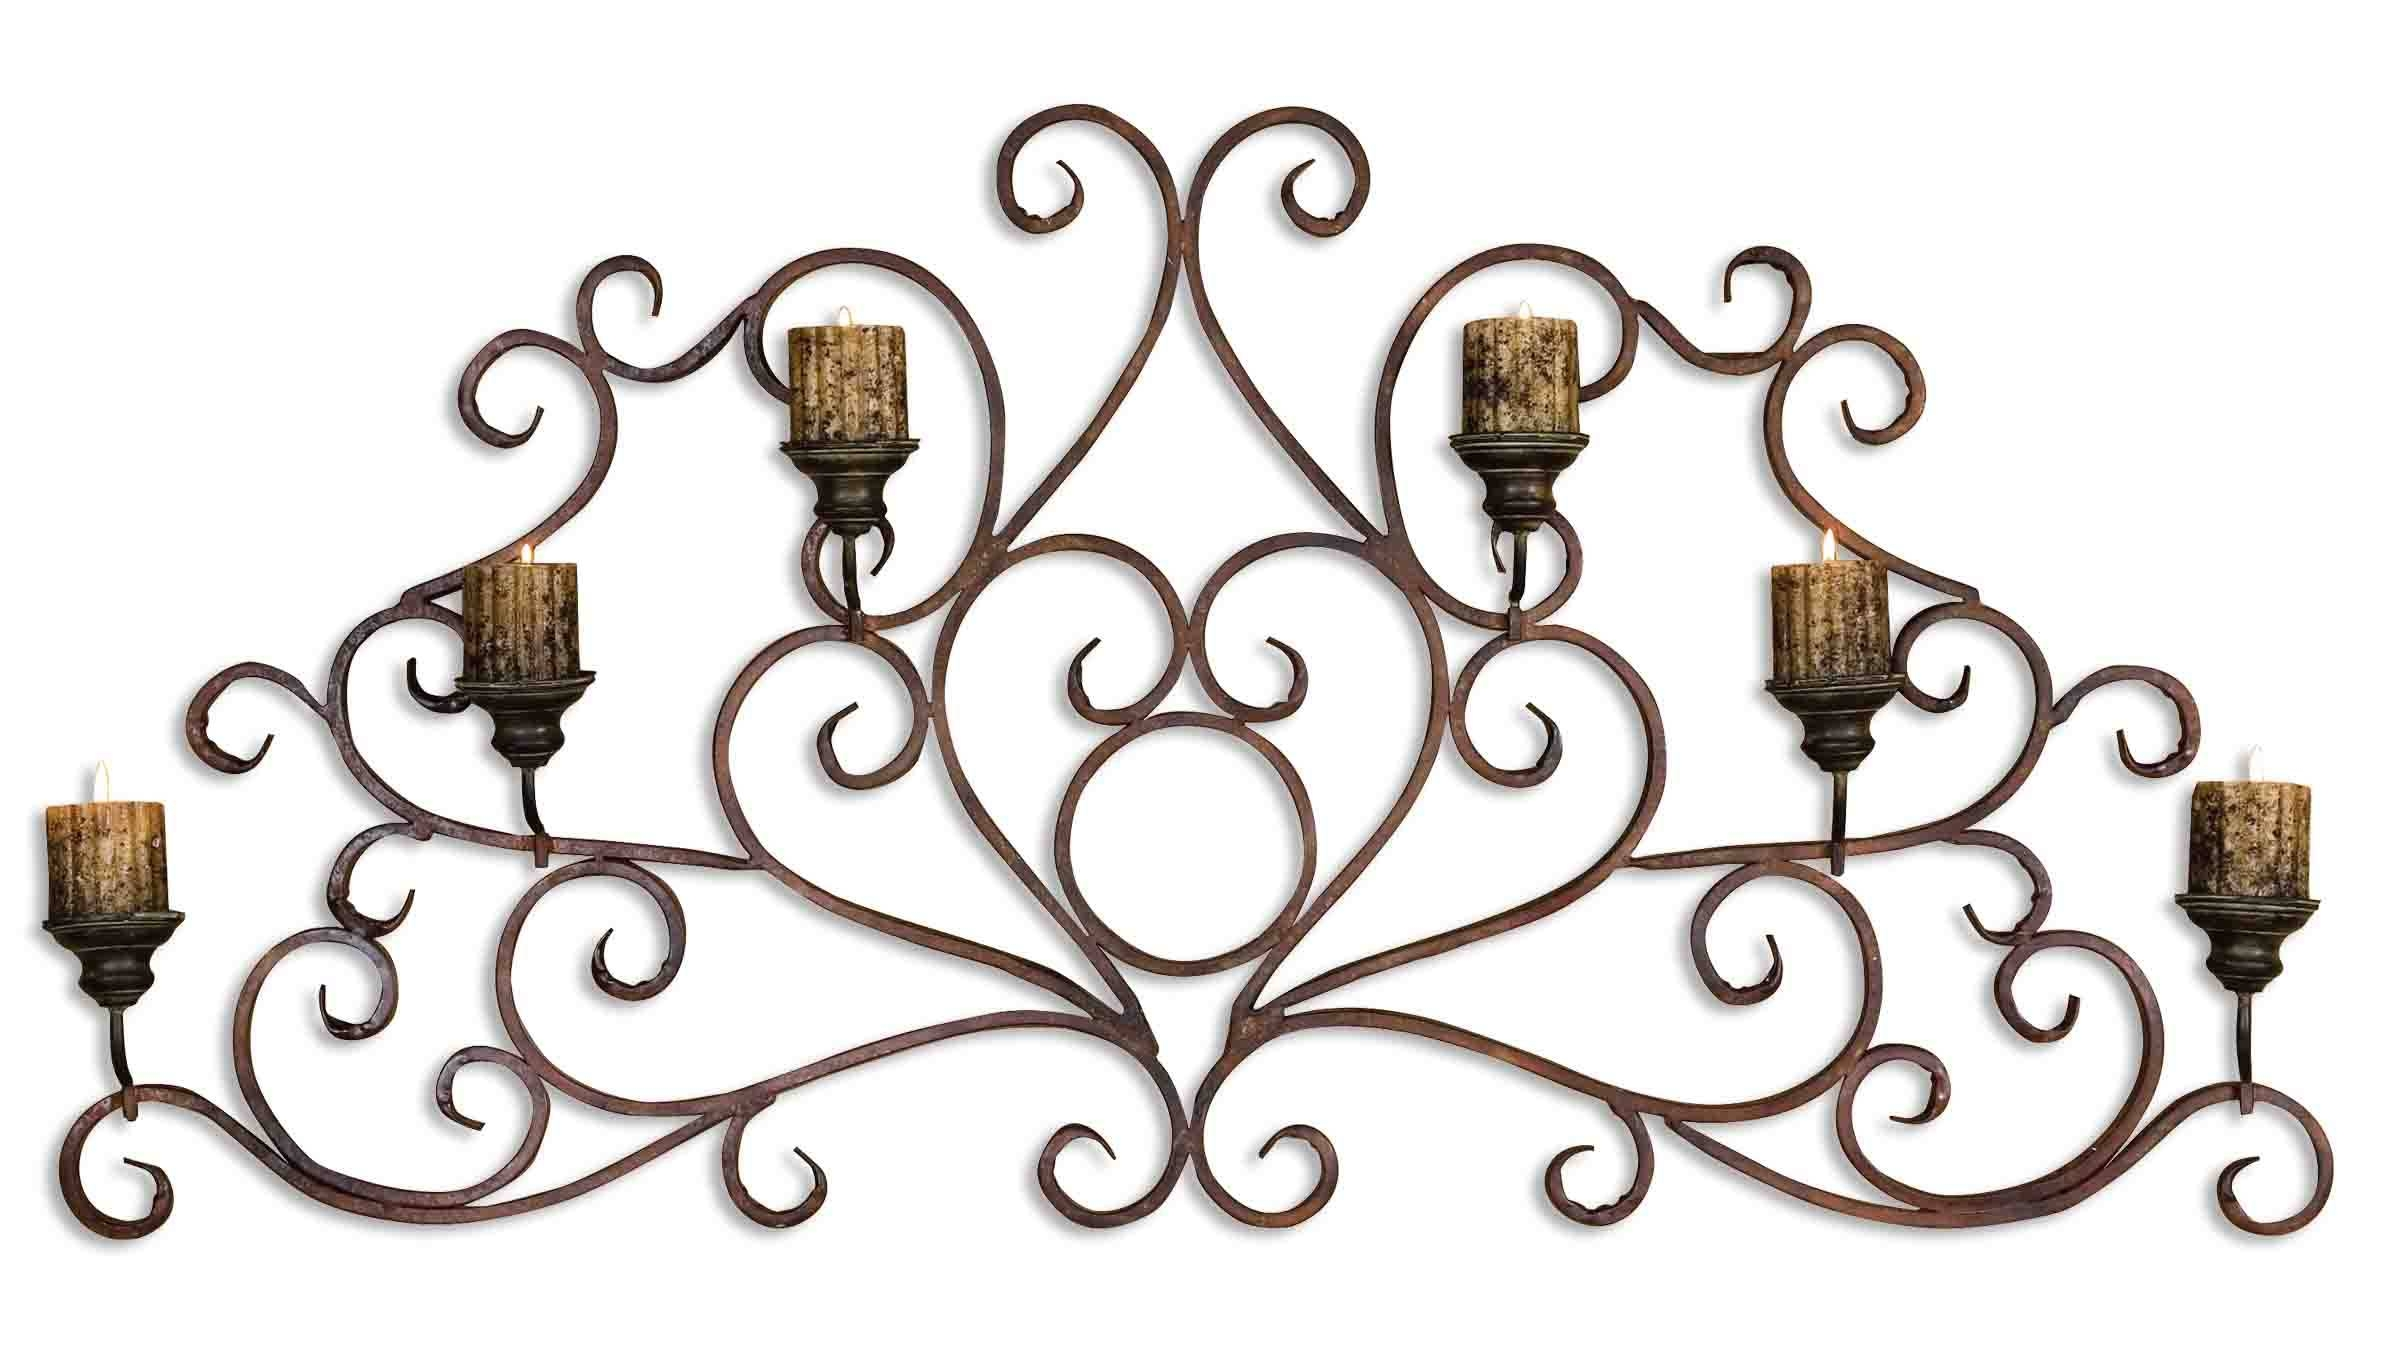 Uttermost Juliana Metal Wall Art Sconce 13446 Inside Current Metal Wall Art With Candles (View 16 of 20)